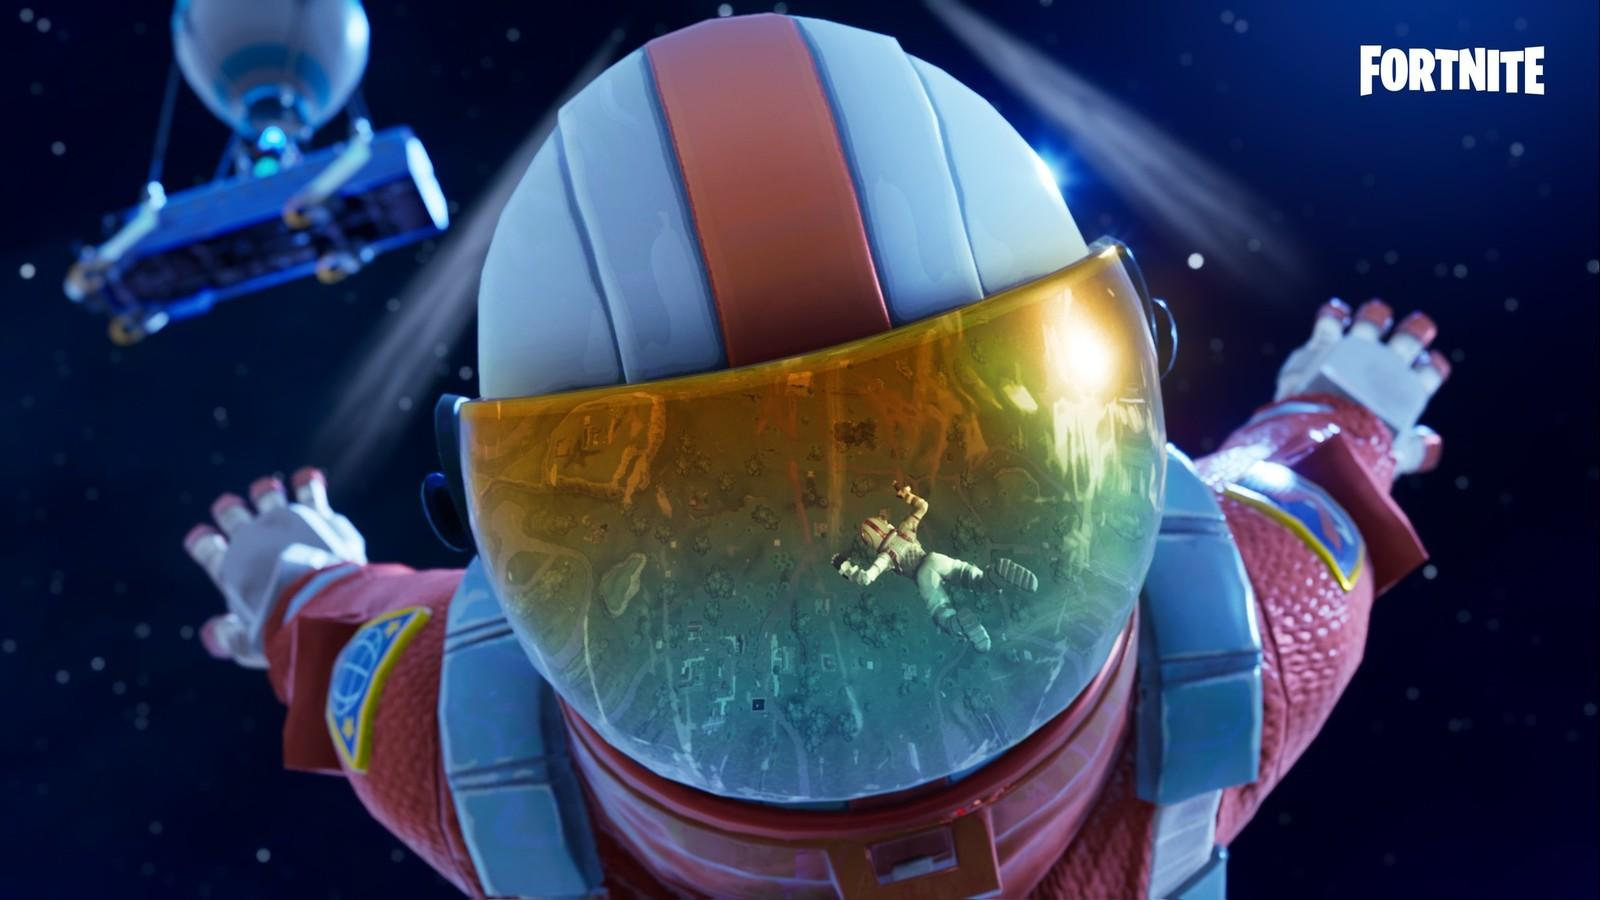 Fortnite Battle Royale Season 3 Battle Pass detailed